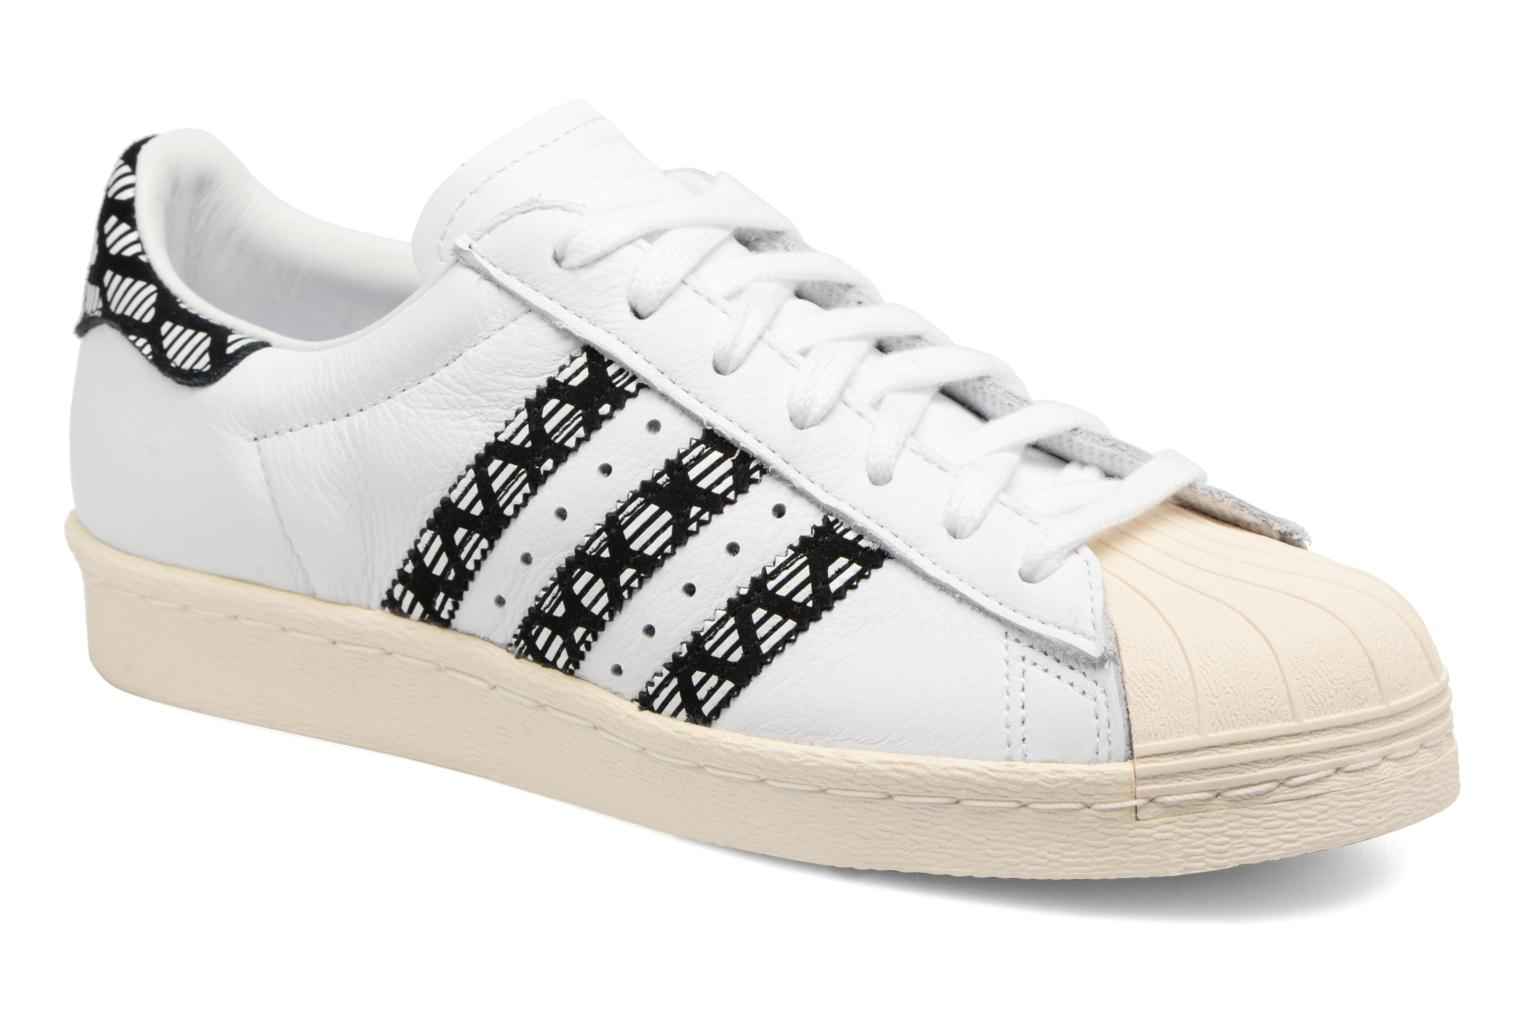 Superstar 80S W Ftwbla/Ftwbla/Blacas AH17